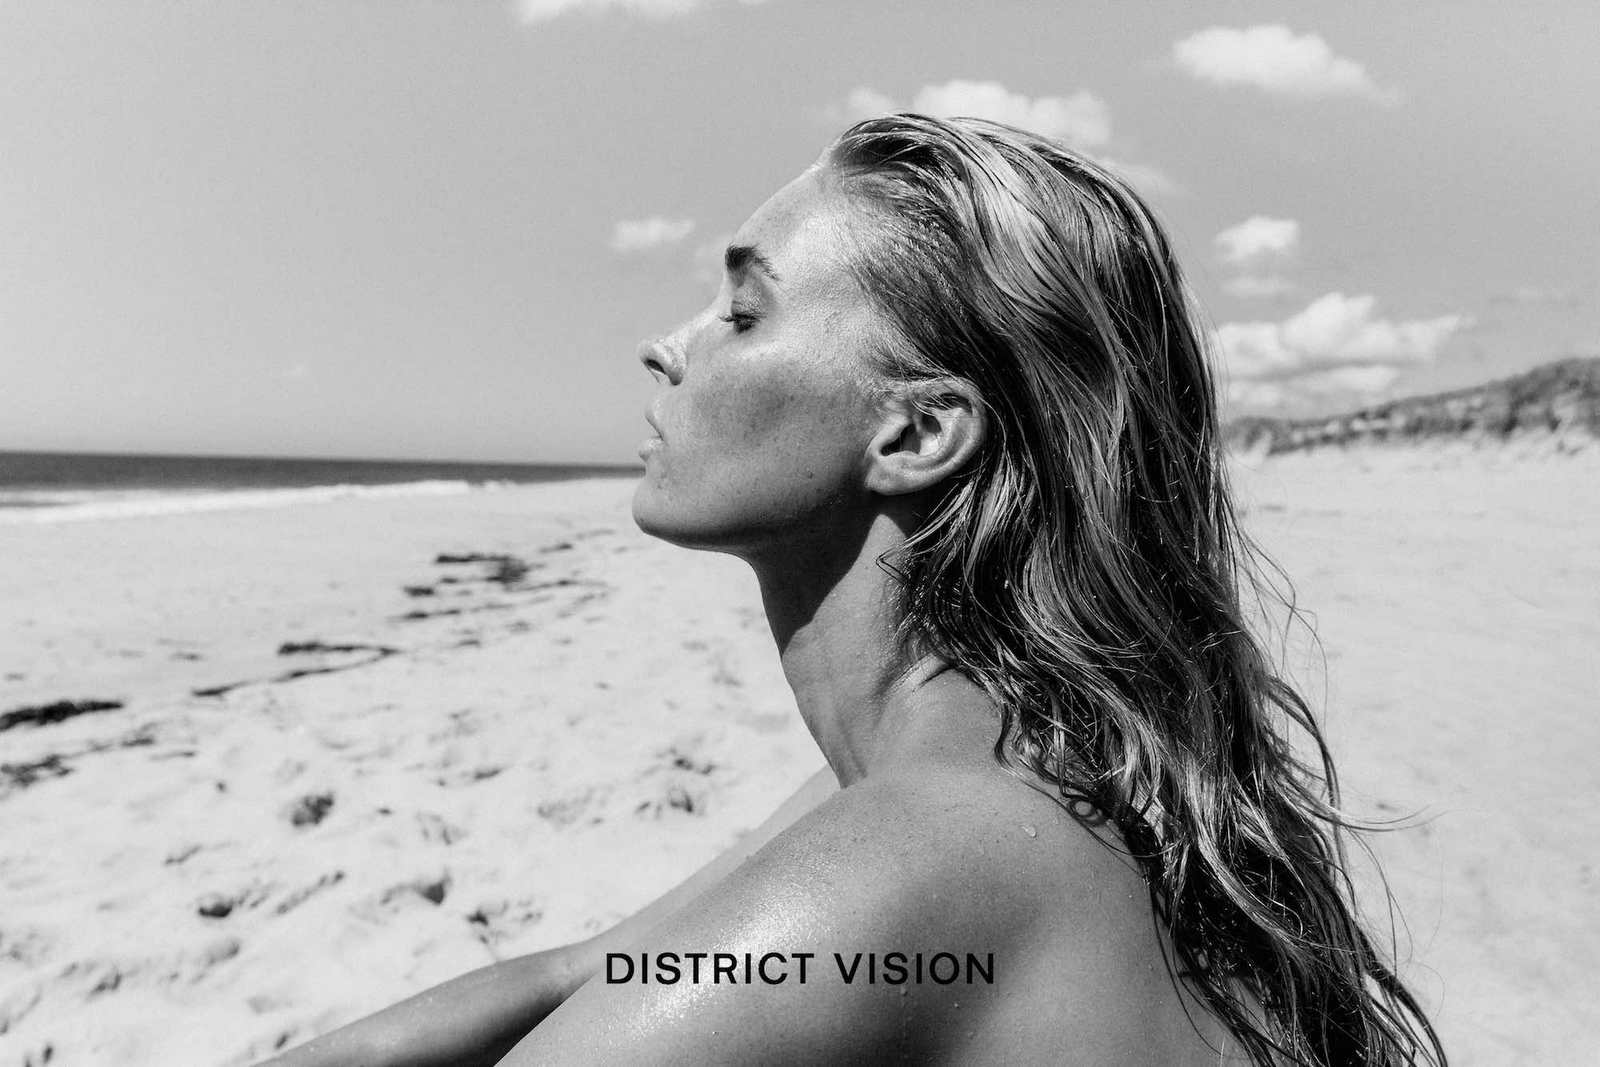 Elsa Hosk by - District Vision photoshoot